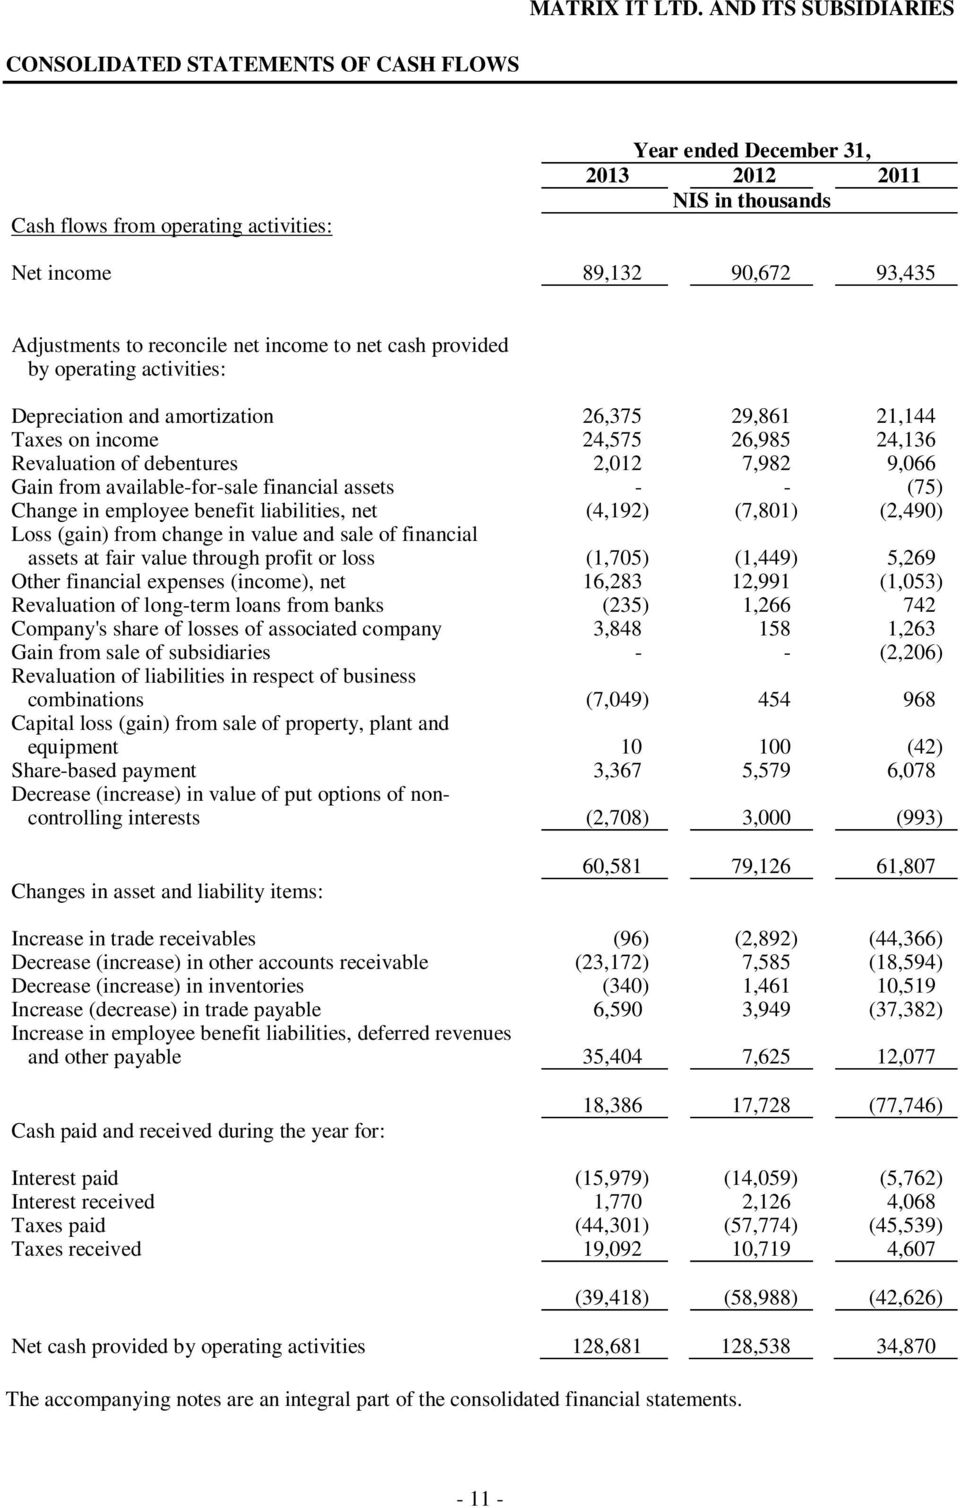 financial assets - - (75) Change in employee benefit liabilities, net (4,192) (7,801) (2,490) Loss (gain) from change in value and sale of financial assets at fair value through profit or loss